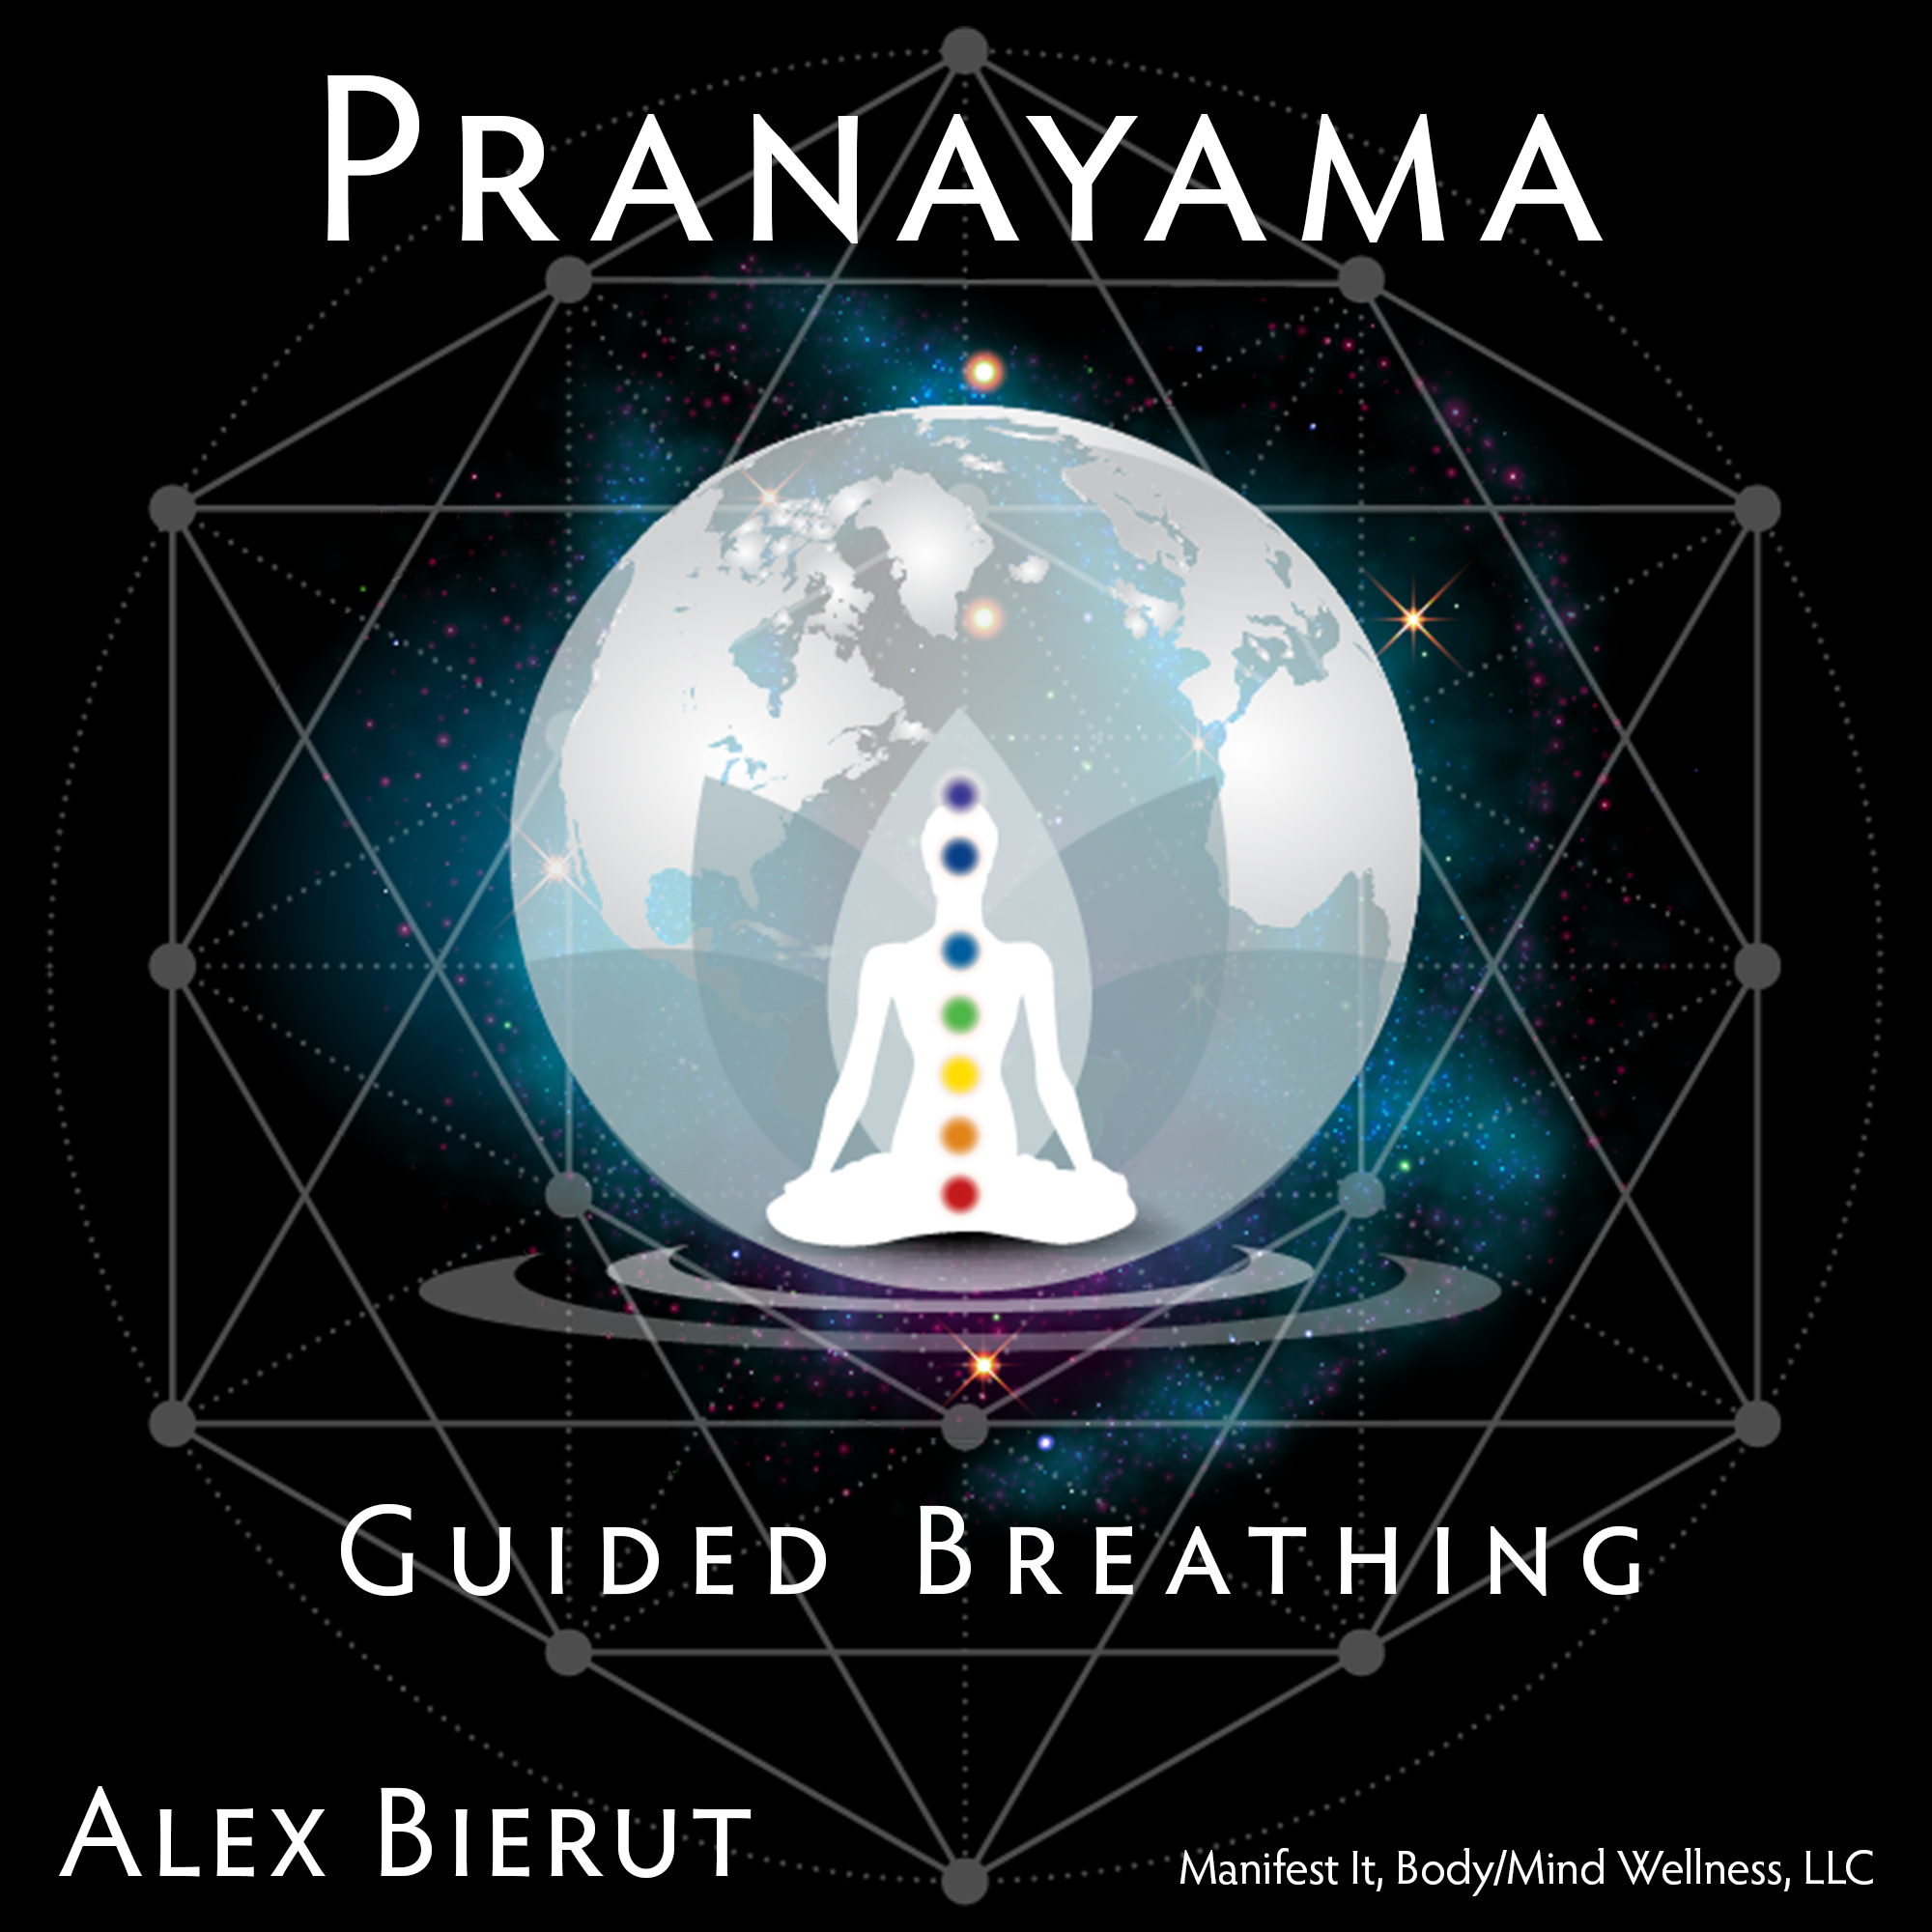 Guided breathing techniques for personal health and well-being. - $9.99